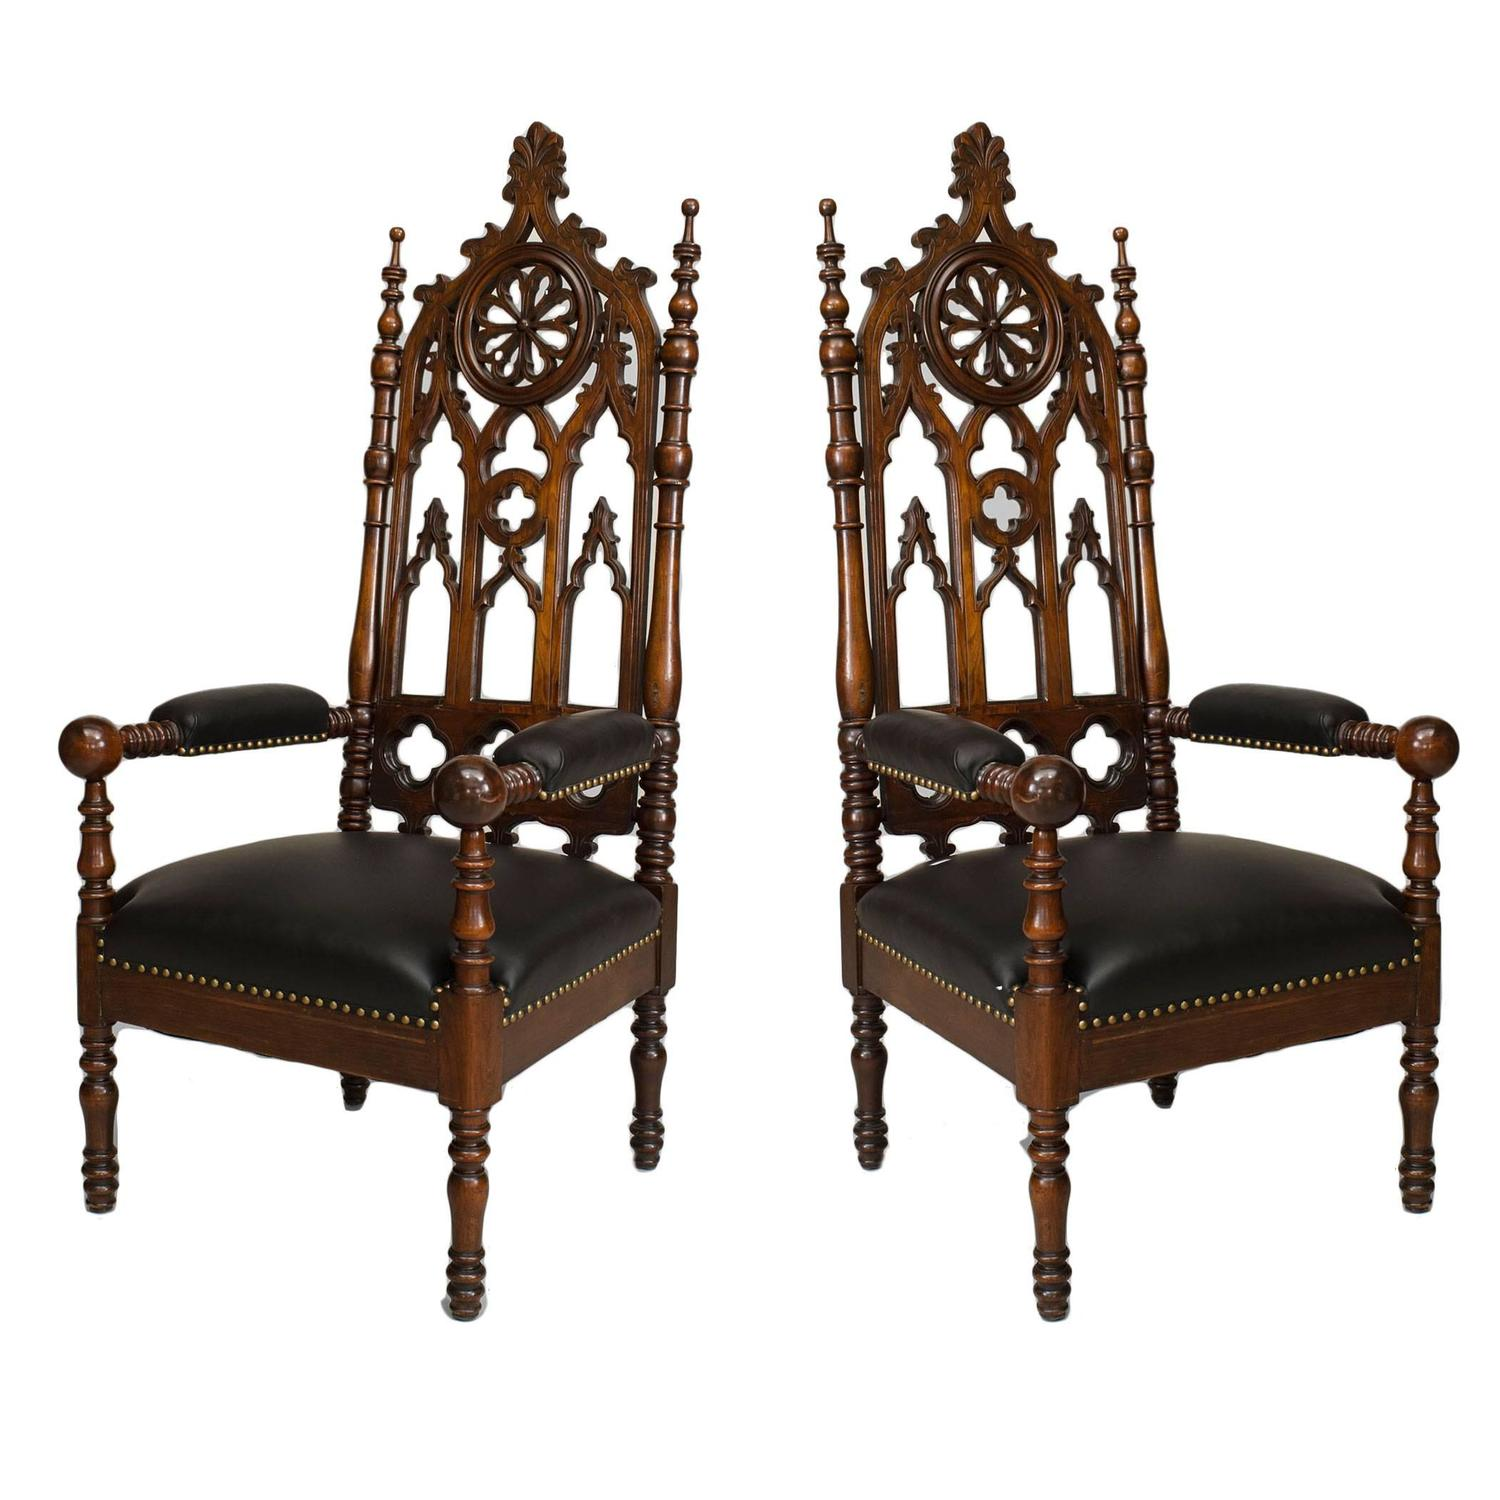 Pair Of 19th C English Gothic Revival Carved Mahogany